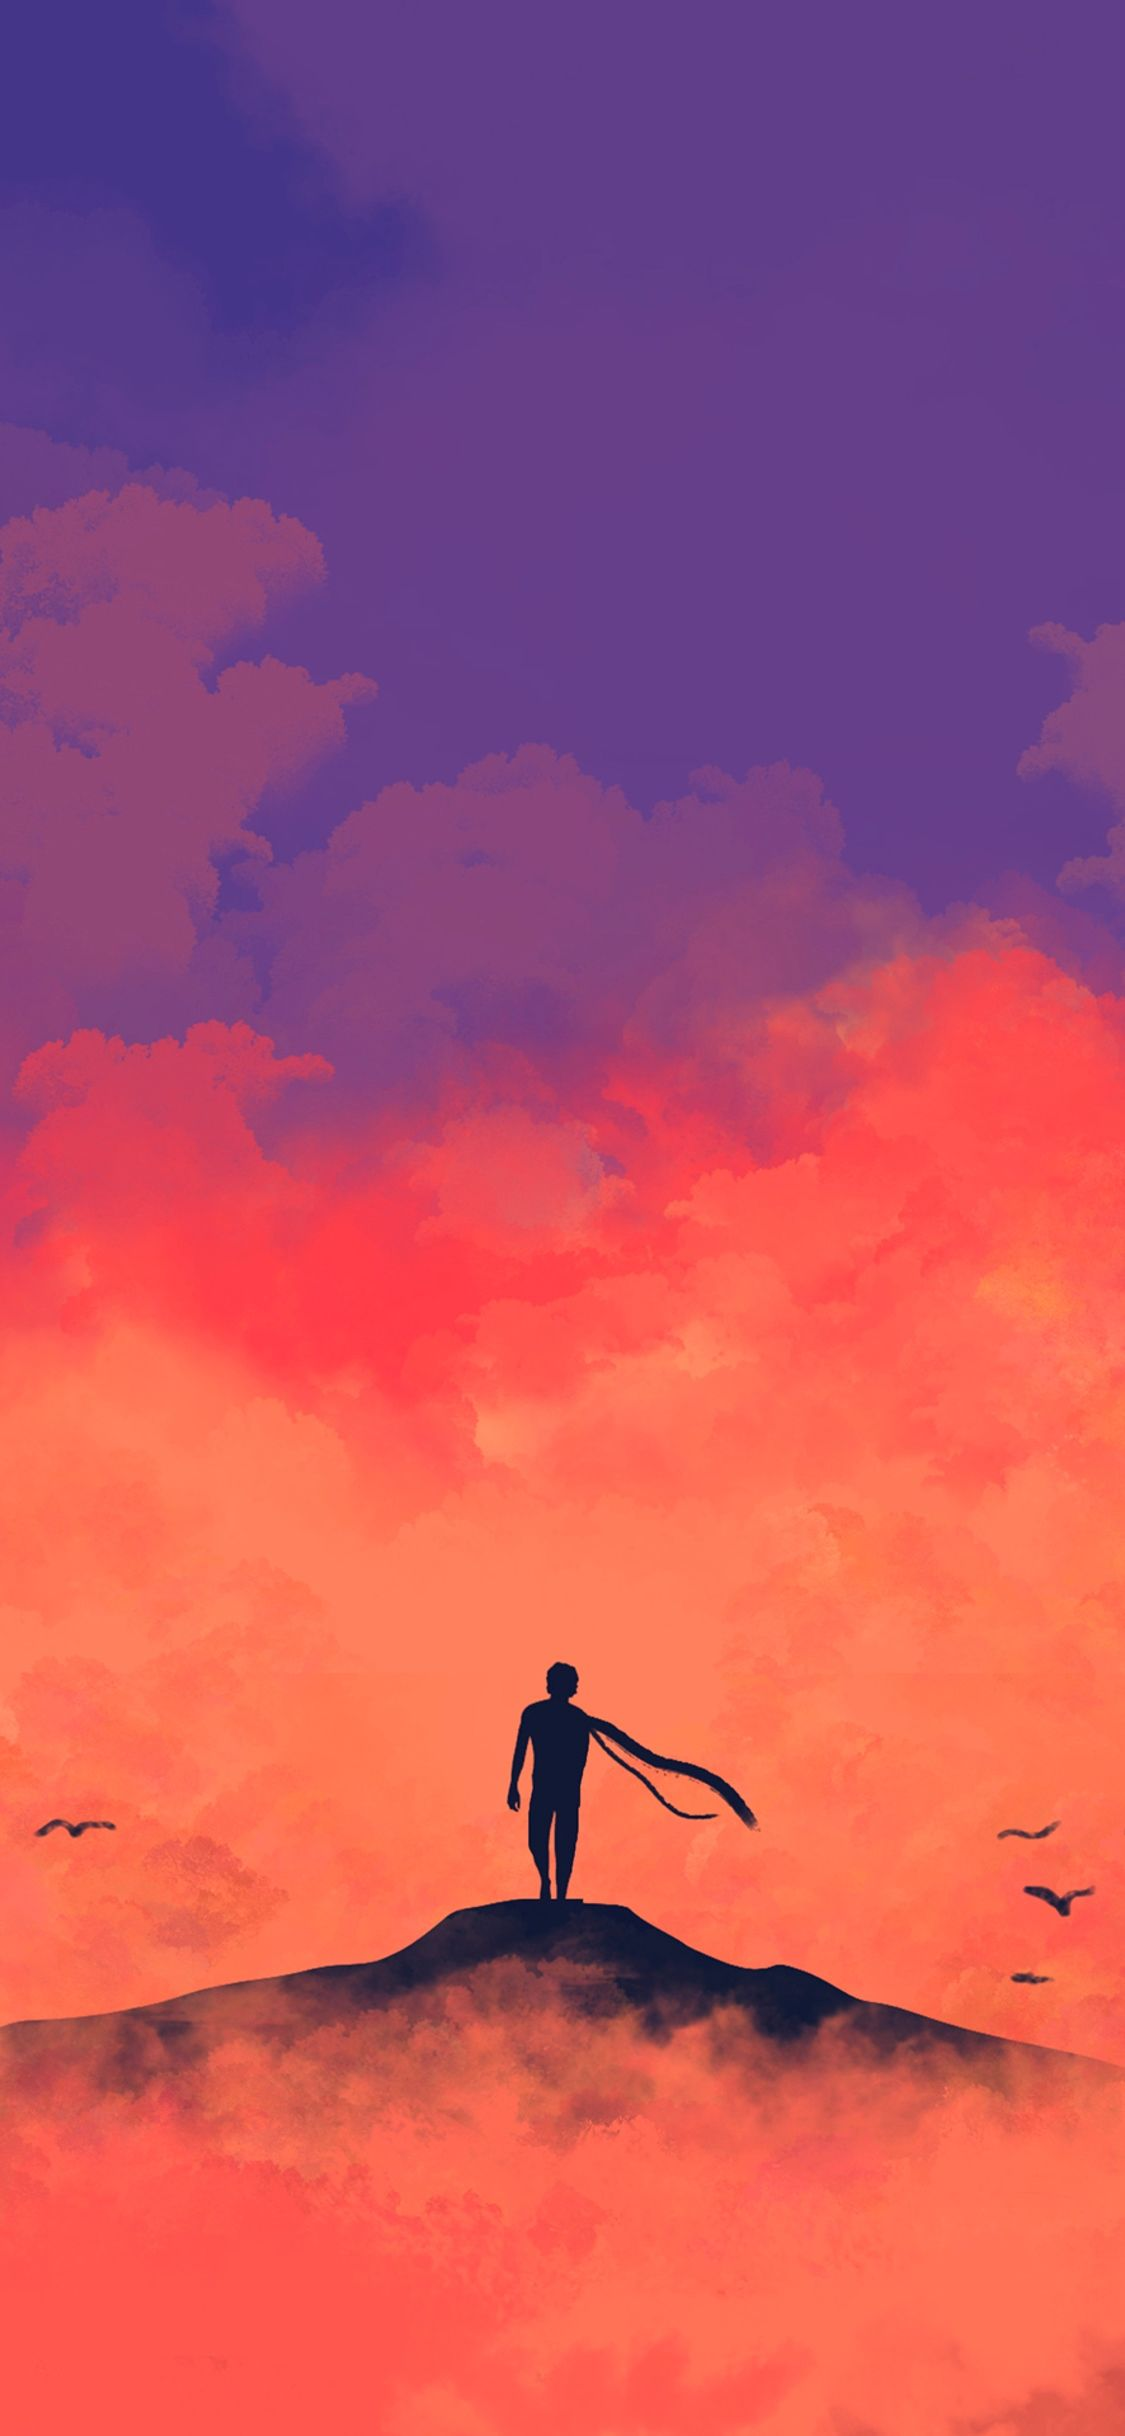 One Piece Wallpaper 4k Iphone X Trick Iphone